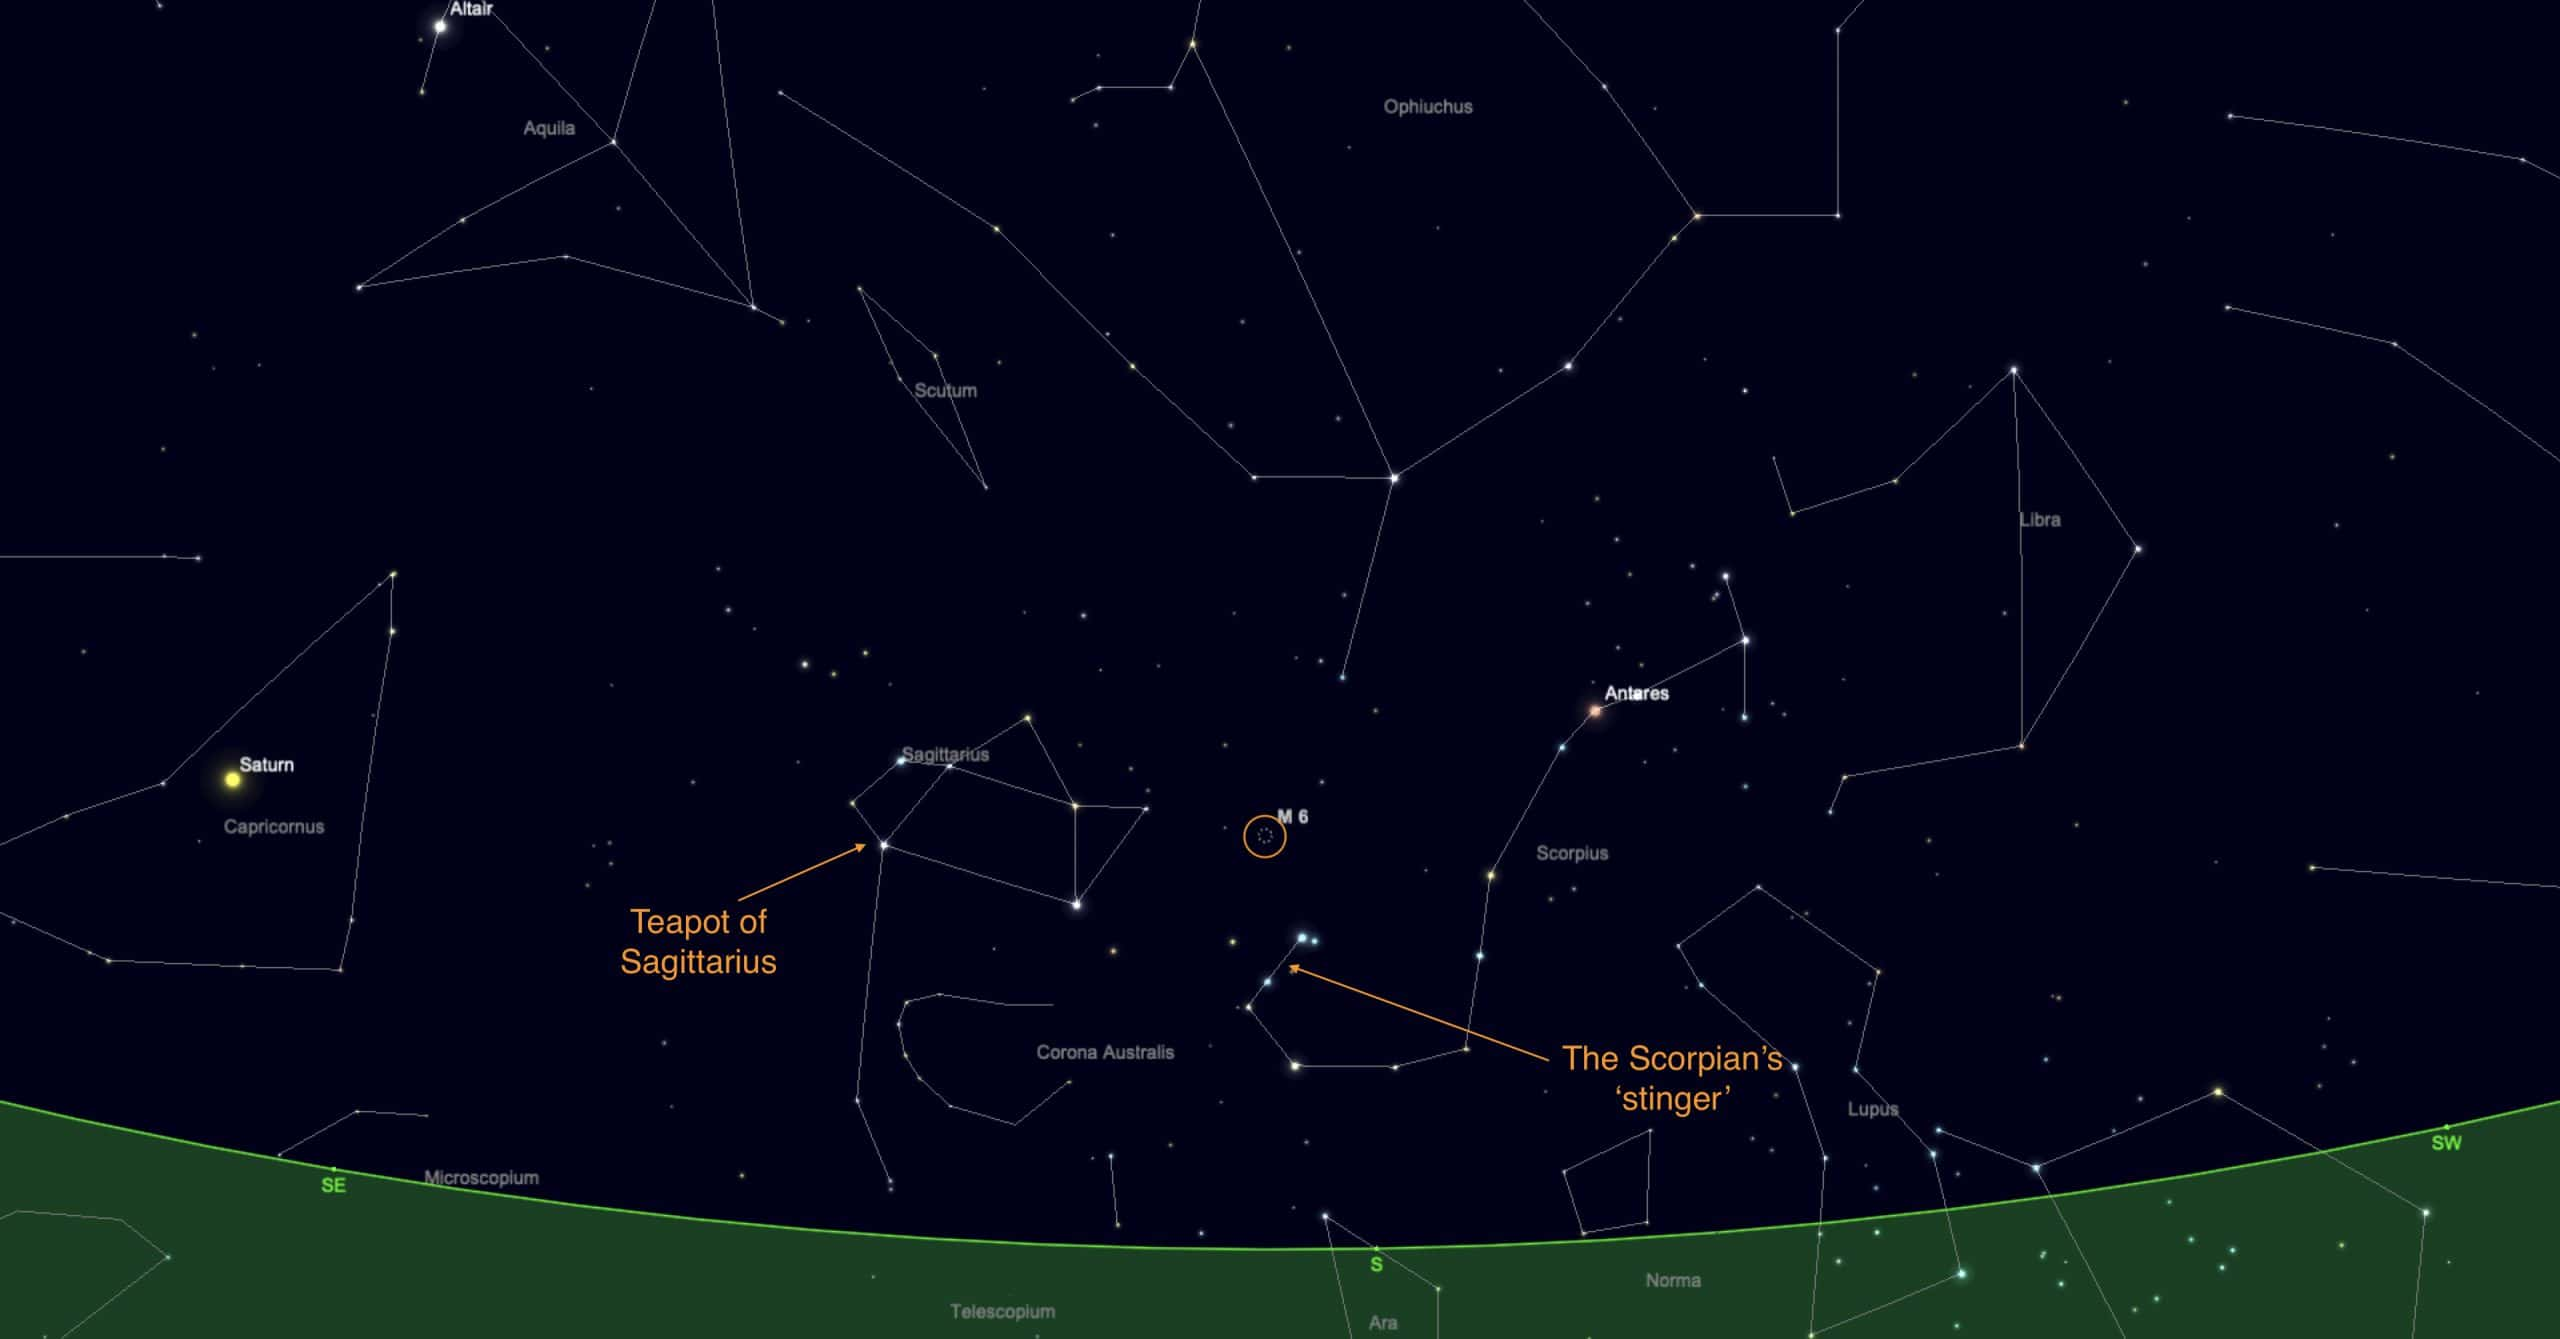 M6 between the Teapot of Sagittarius and the stinger in Scorpius's tail